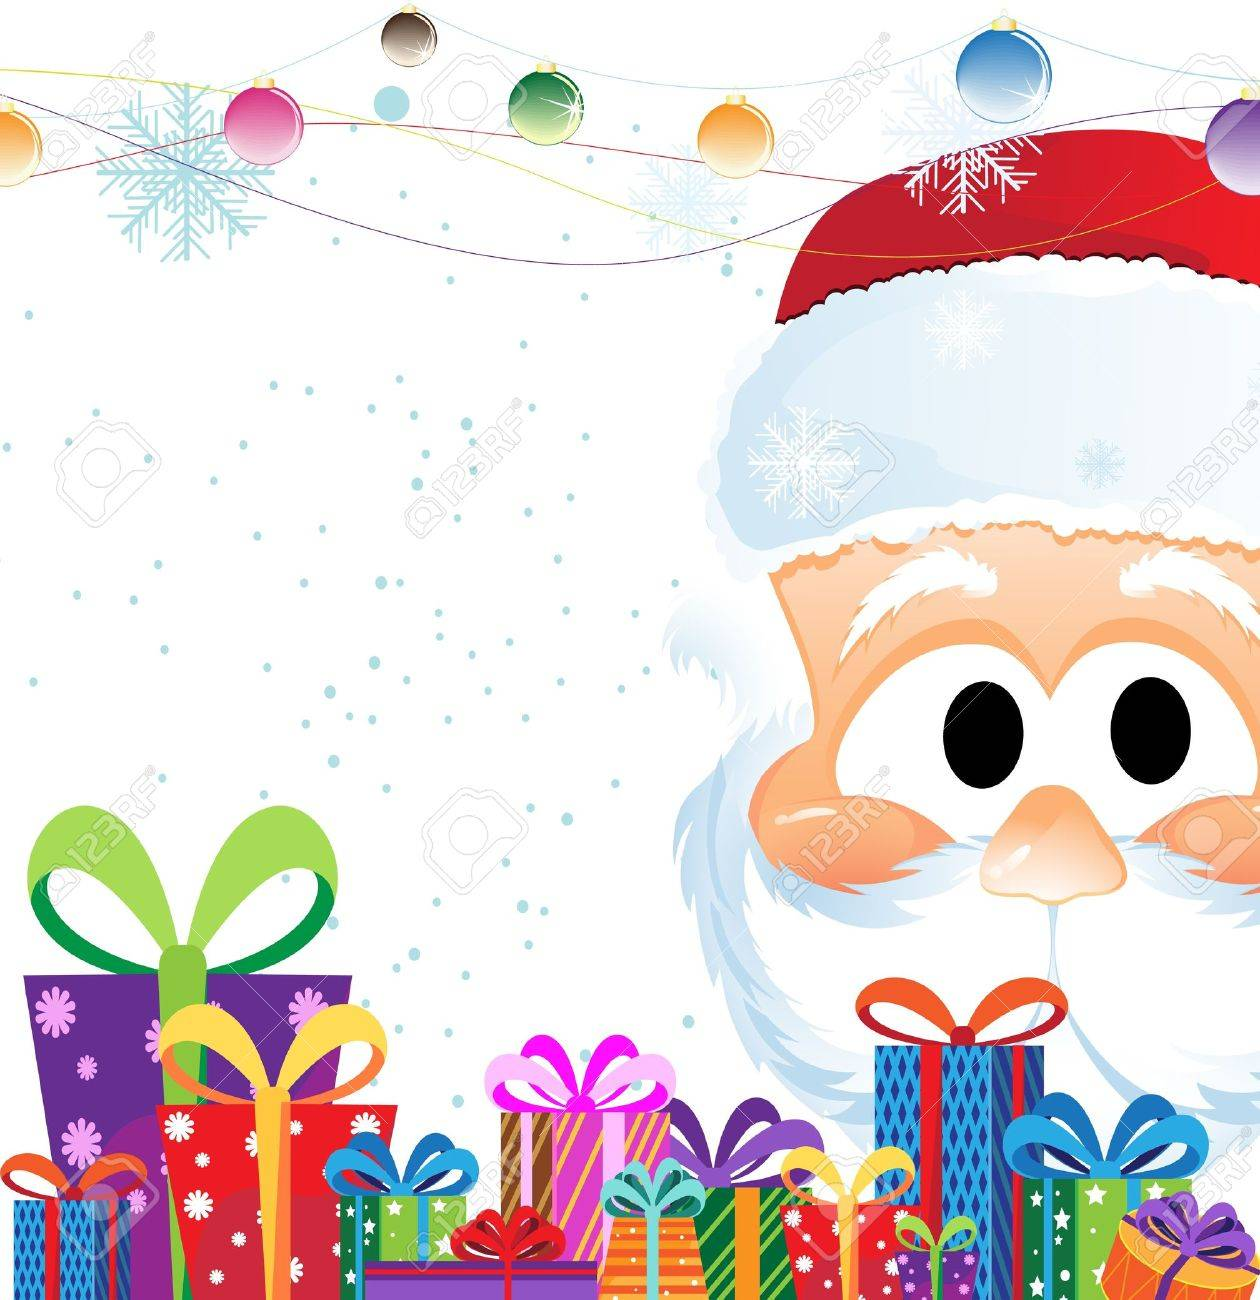 Santa Claus Head and heap of Christmas gifts on a white background - 11528015